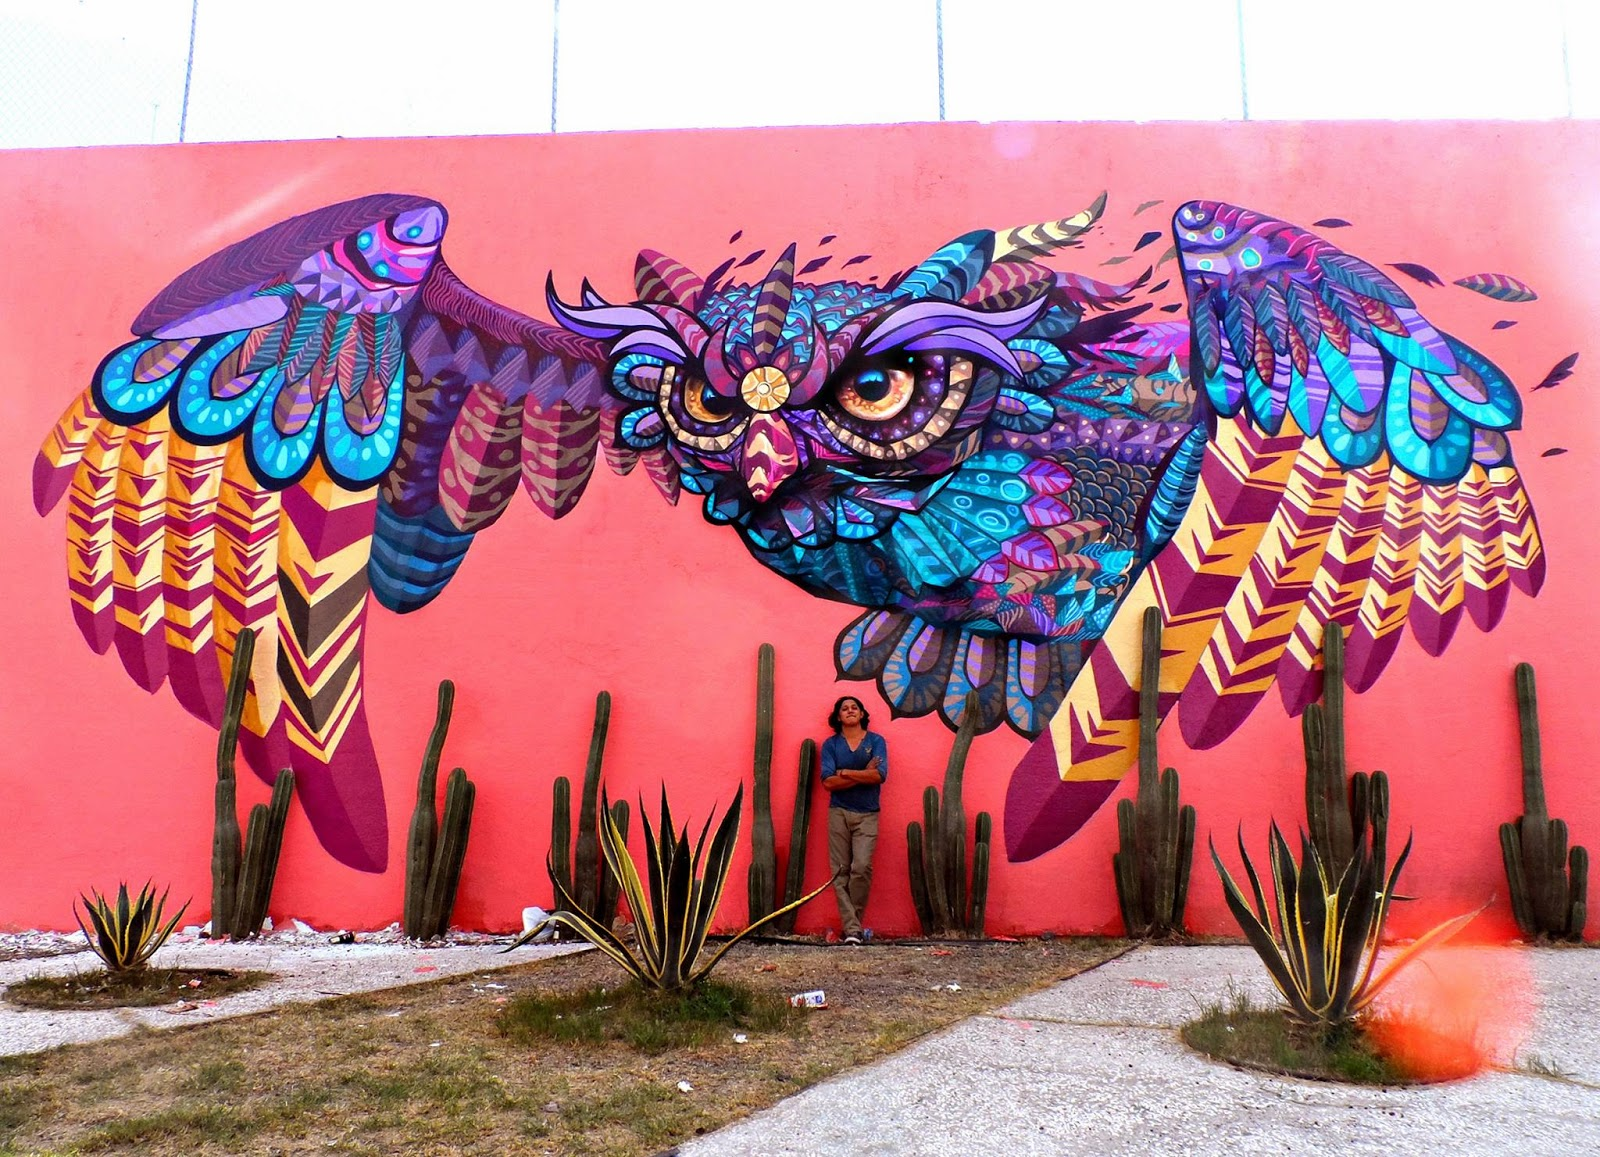 Farid rueda unveils a new series of murals on the streets for Arte mural en mexico